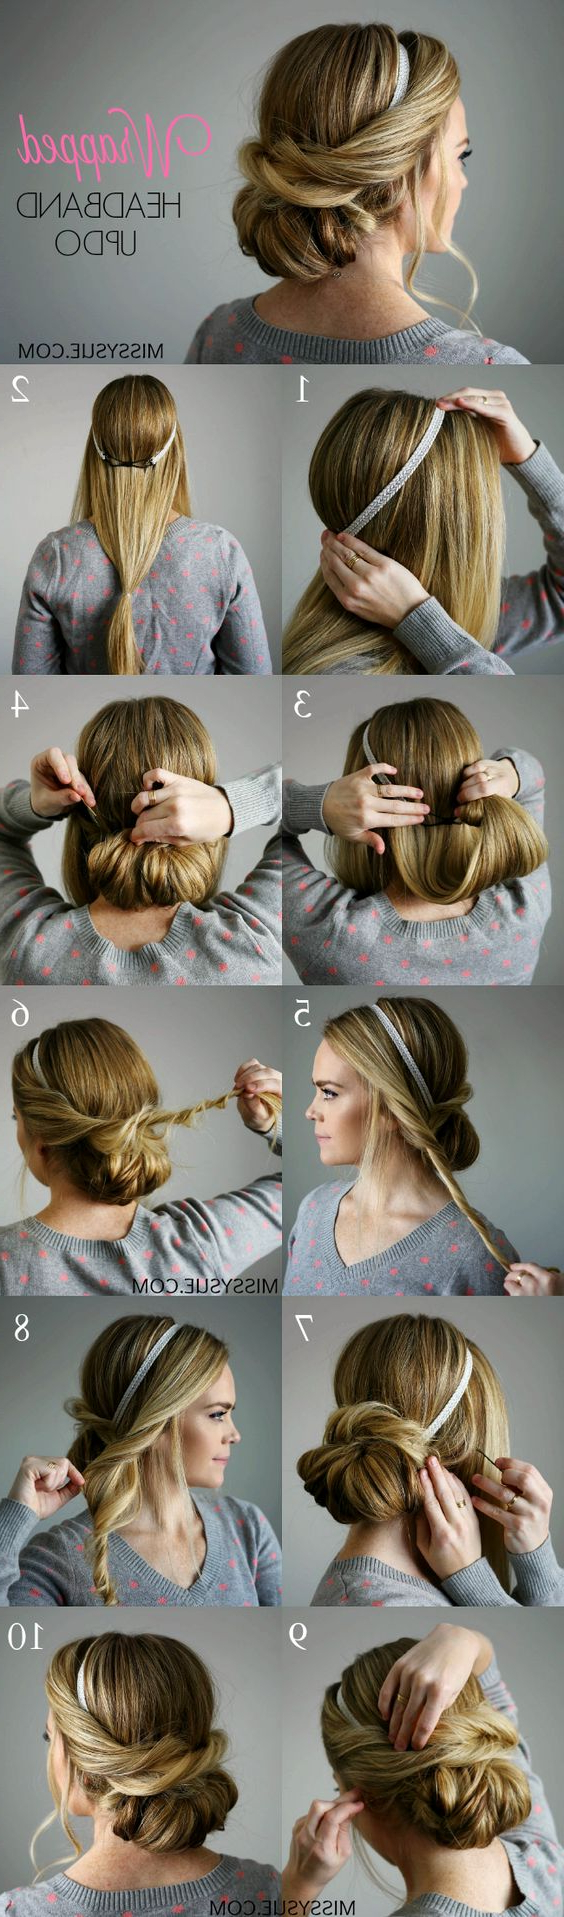 Widely Used High Bun With Twisted Hairstyles Wrap And Graduated Side Bang For 11 Easy Stepstep Updo Tutorials For Beginners – Hair (Gallery 18 of 20)